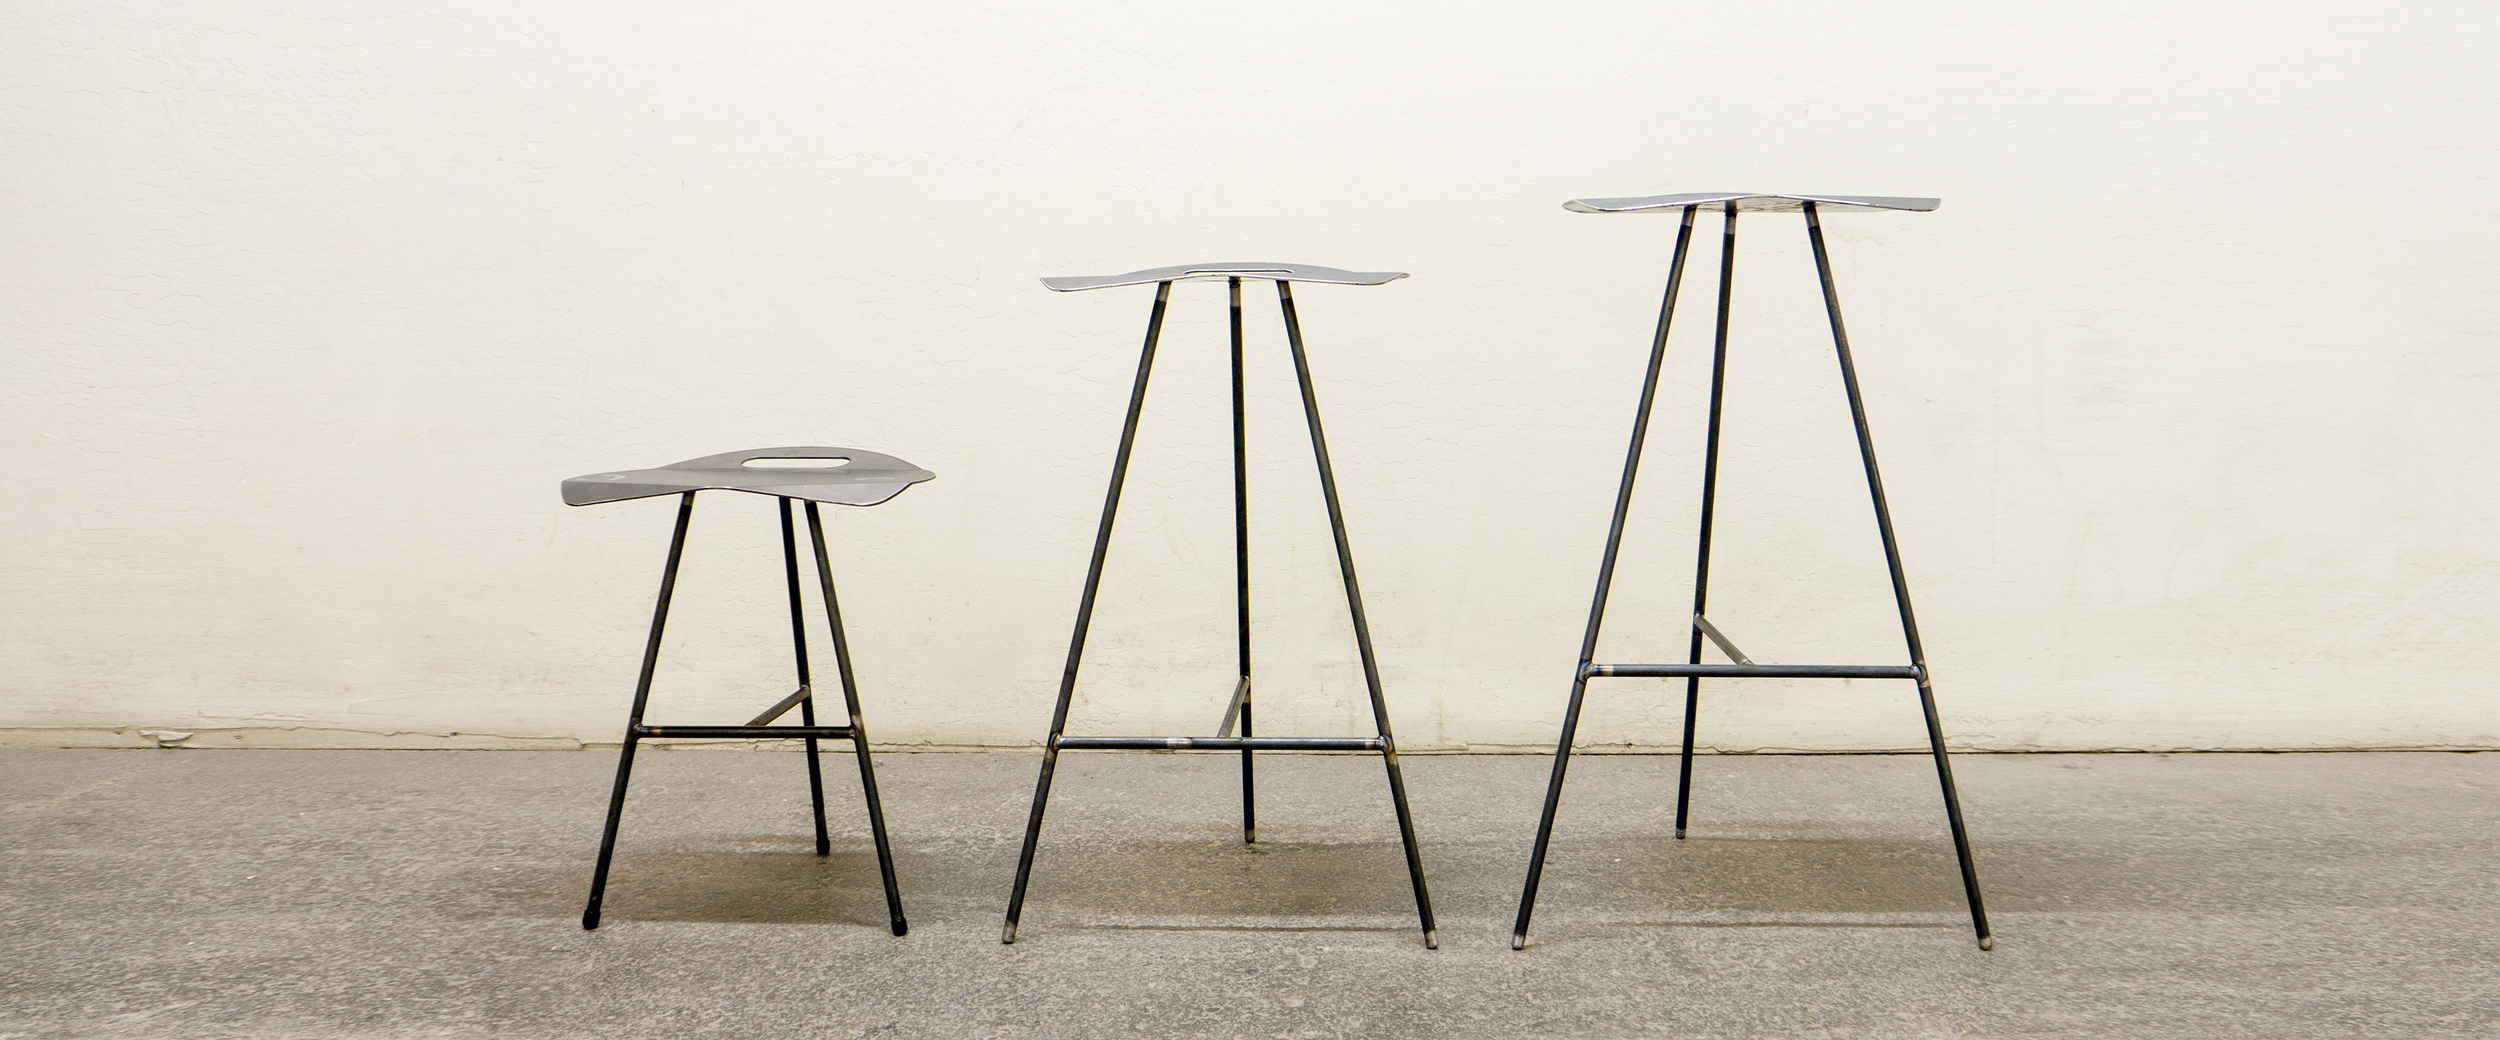 Featuring limited OldaniSteel Mill Stools in 3 sizes.